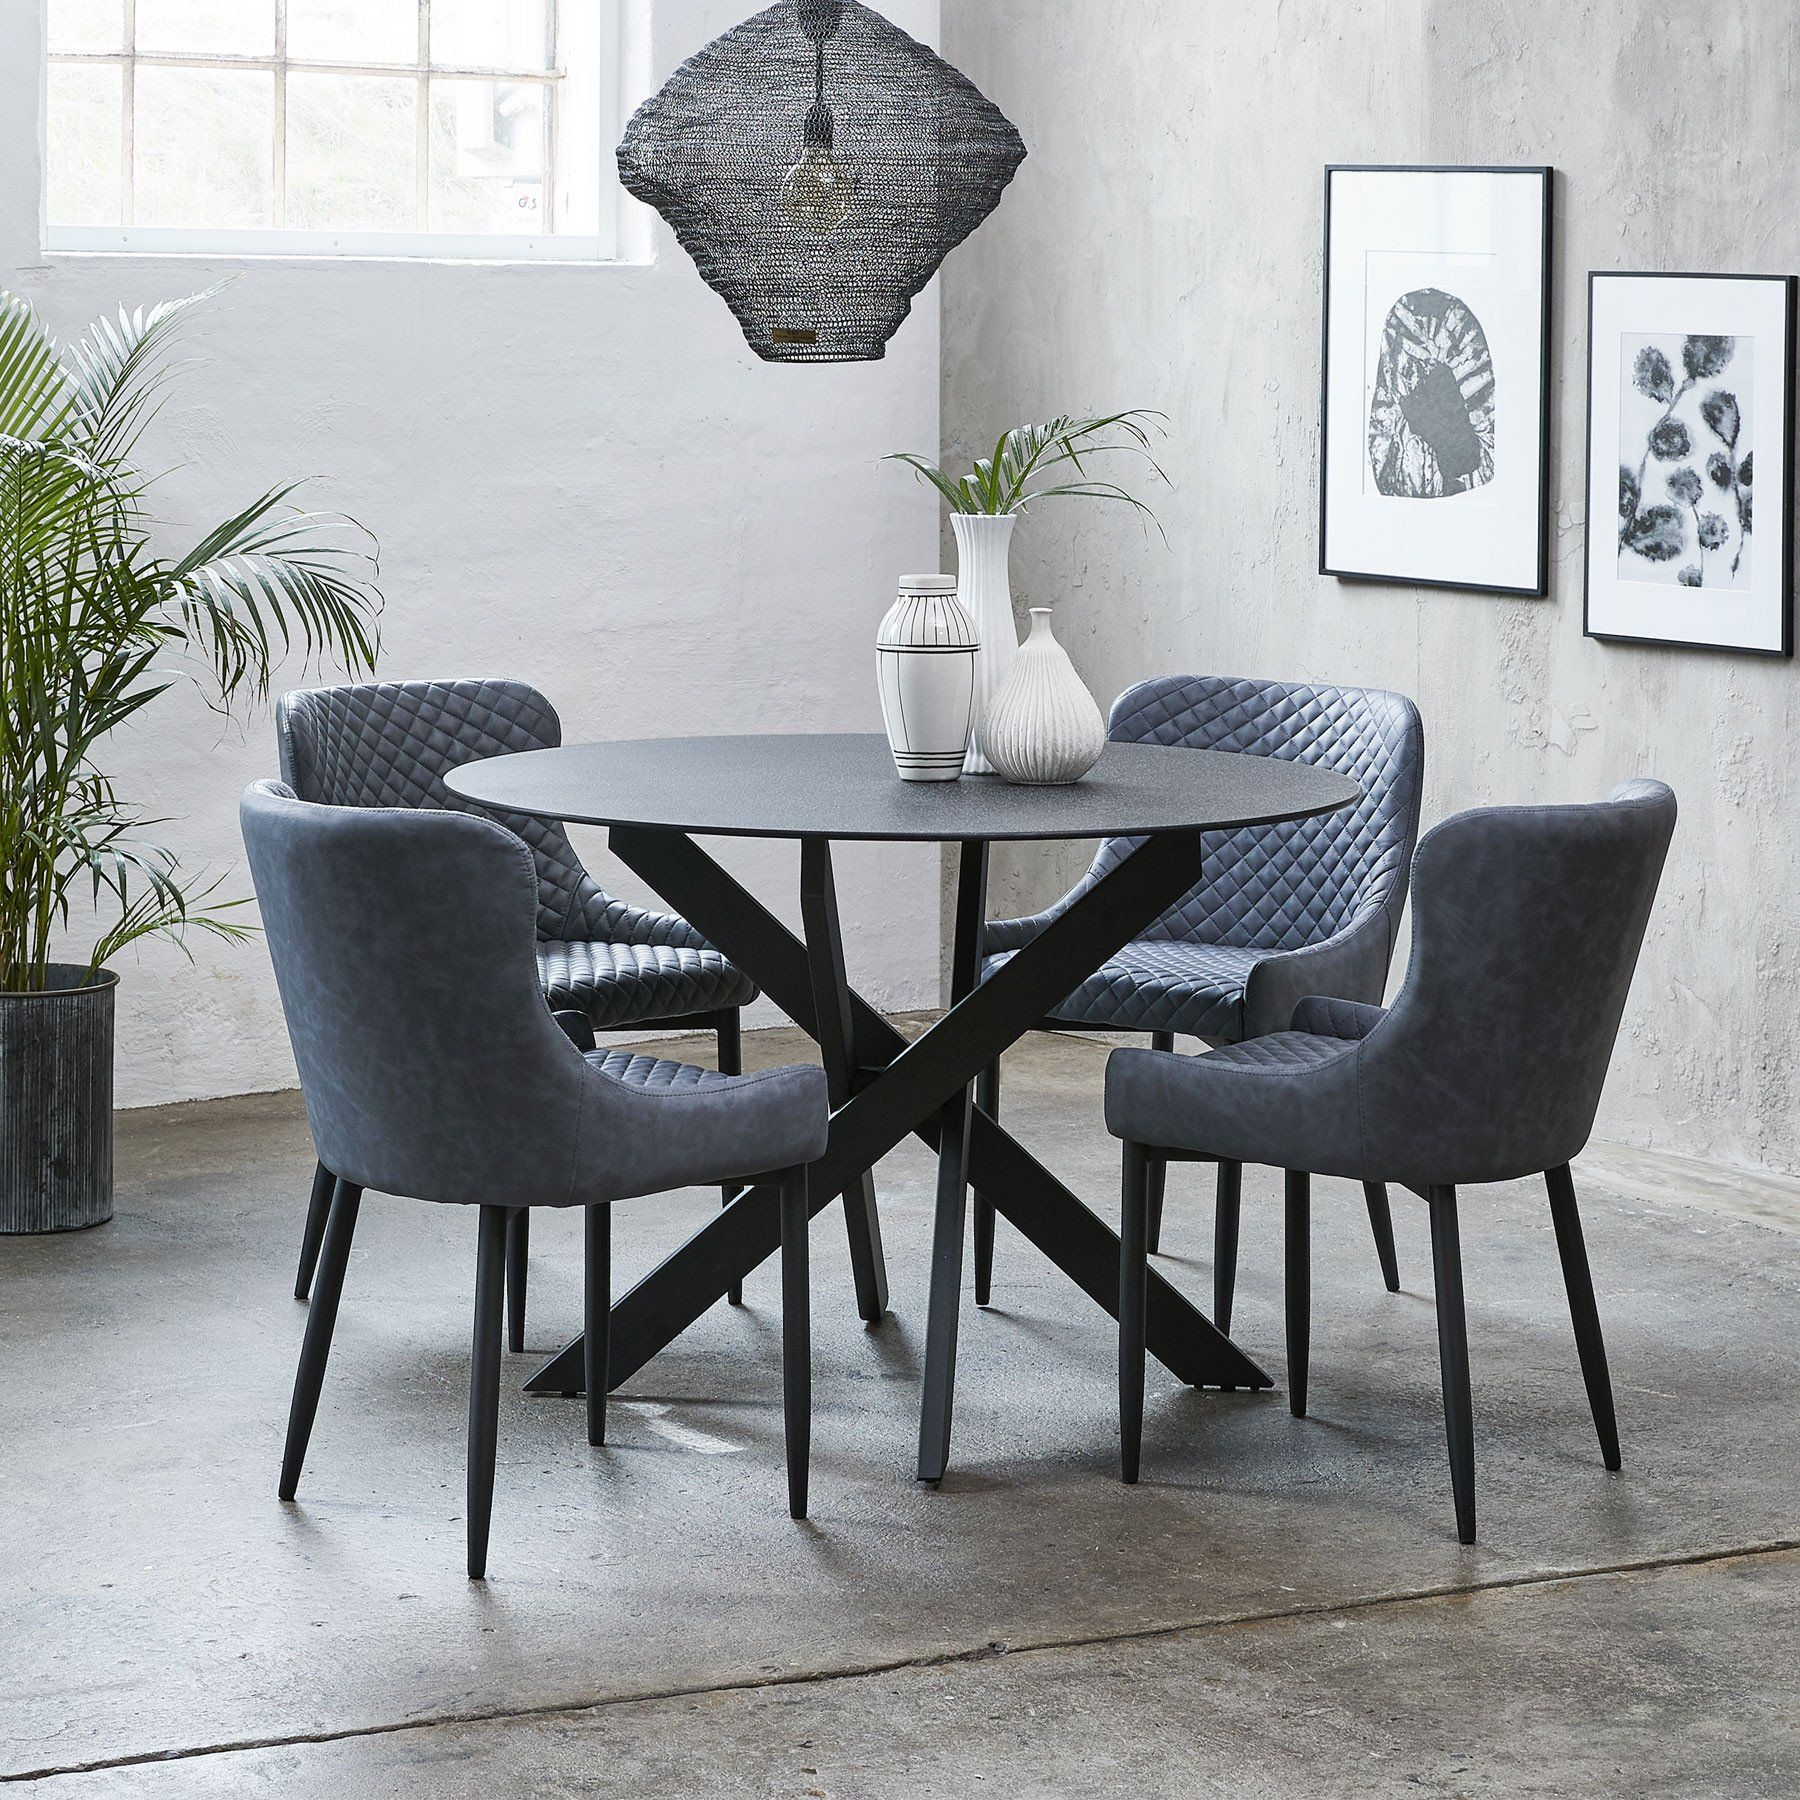 Remi 120cm Round Dining Table Dining Table Grey Round Dining